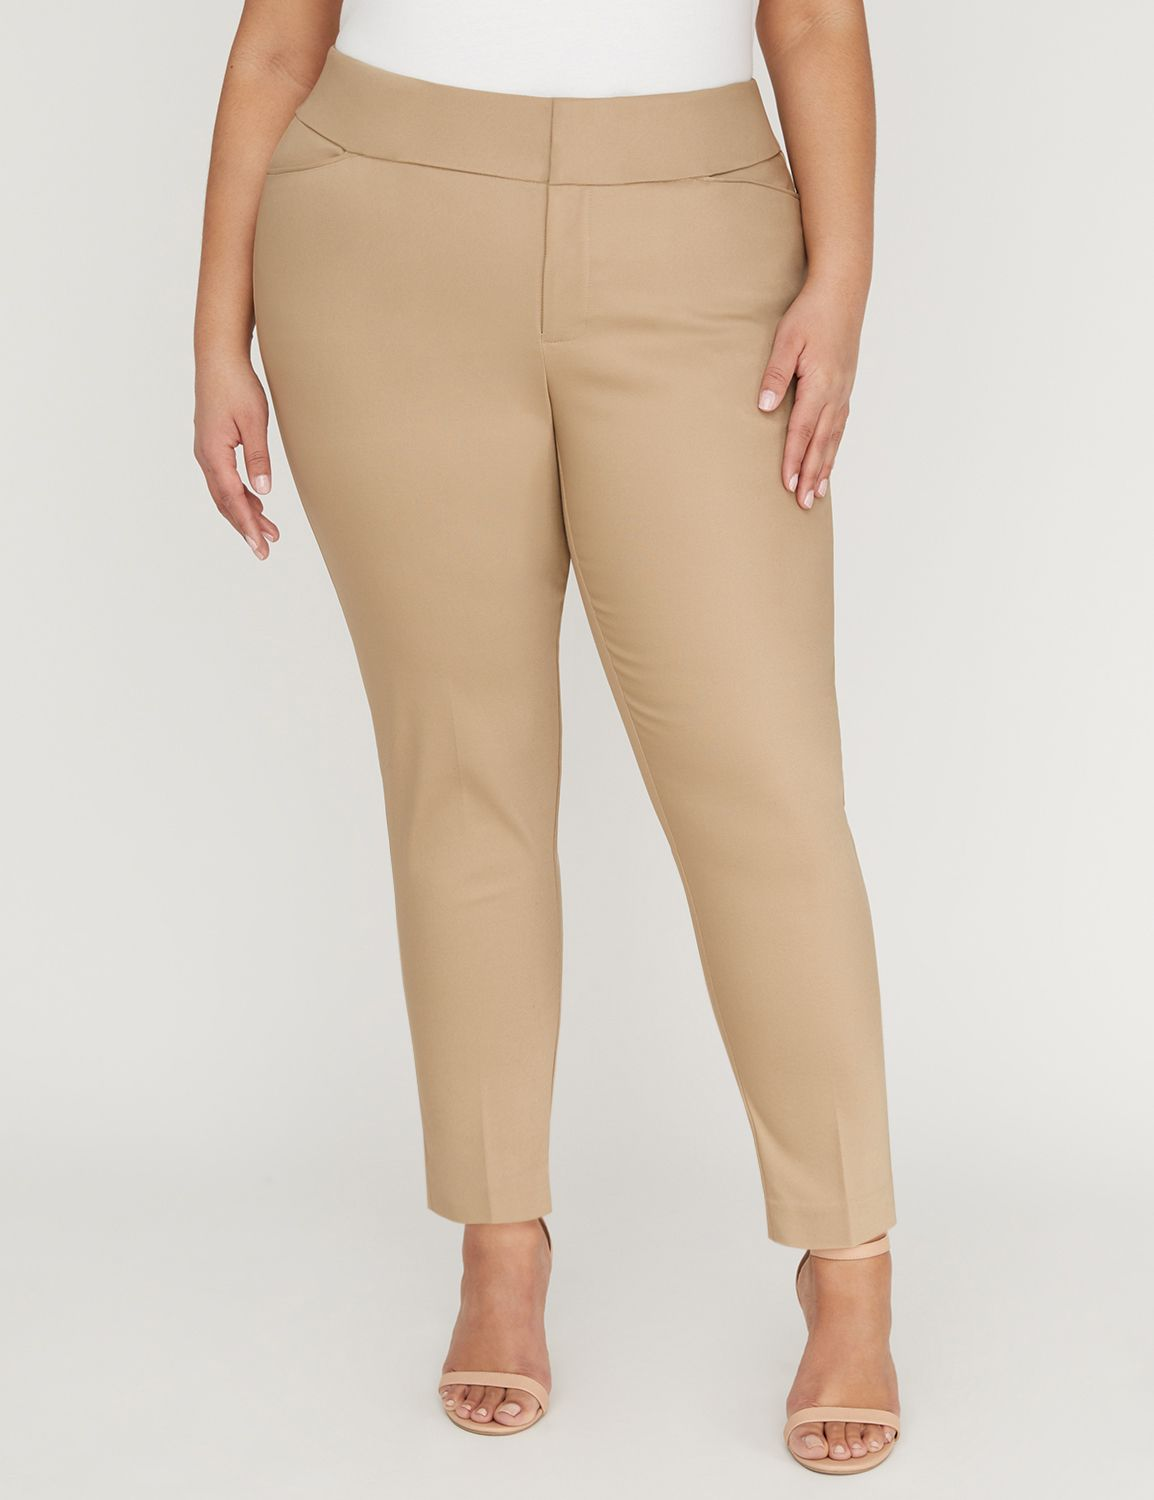 Updated Modern Stretch Ankle Pant 1087775 MODERN STRETCH WIDE WAISTBA MP-300097623